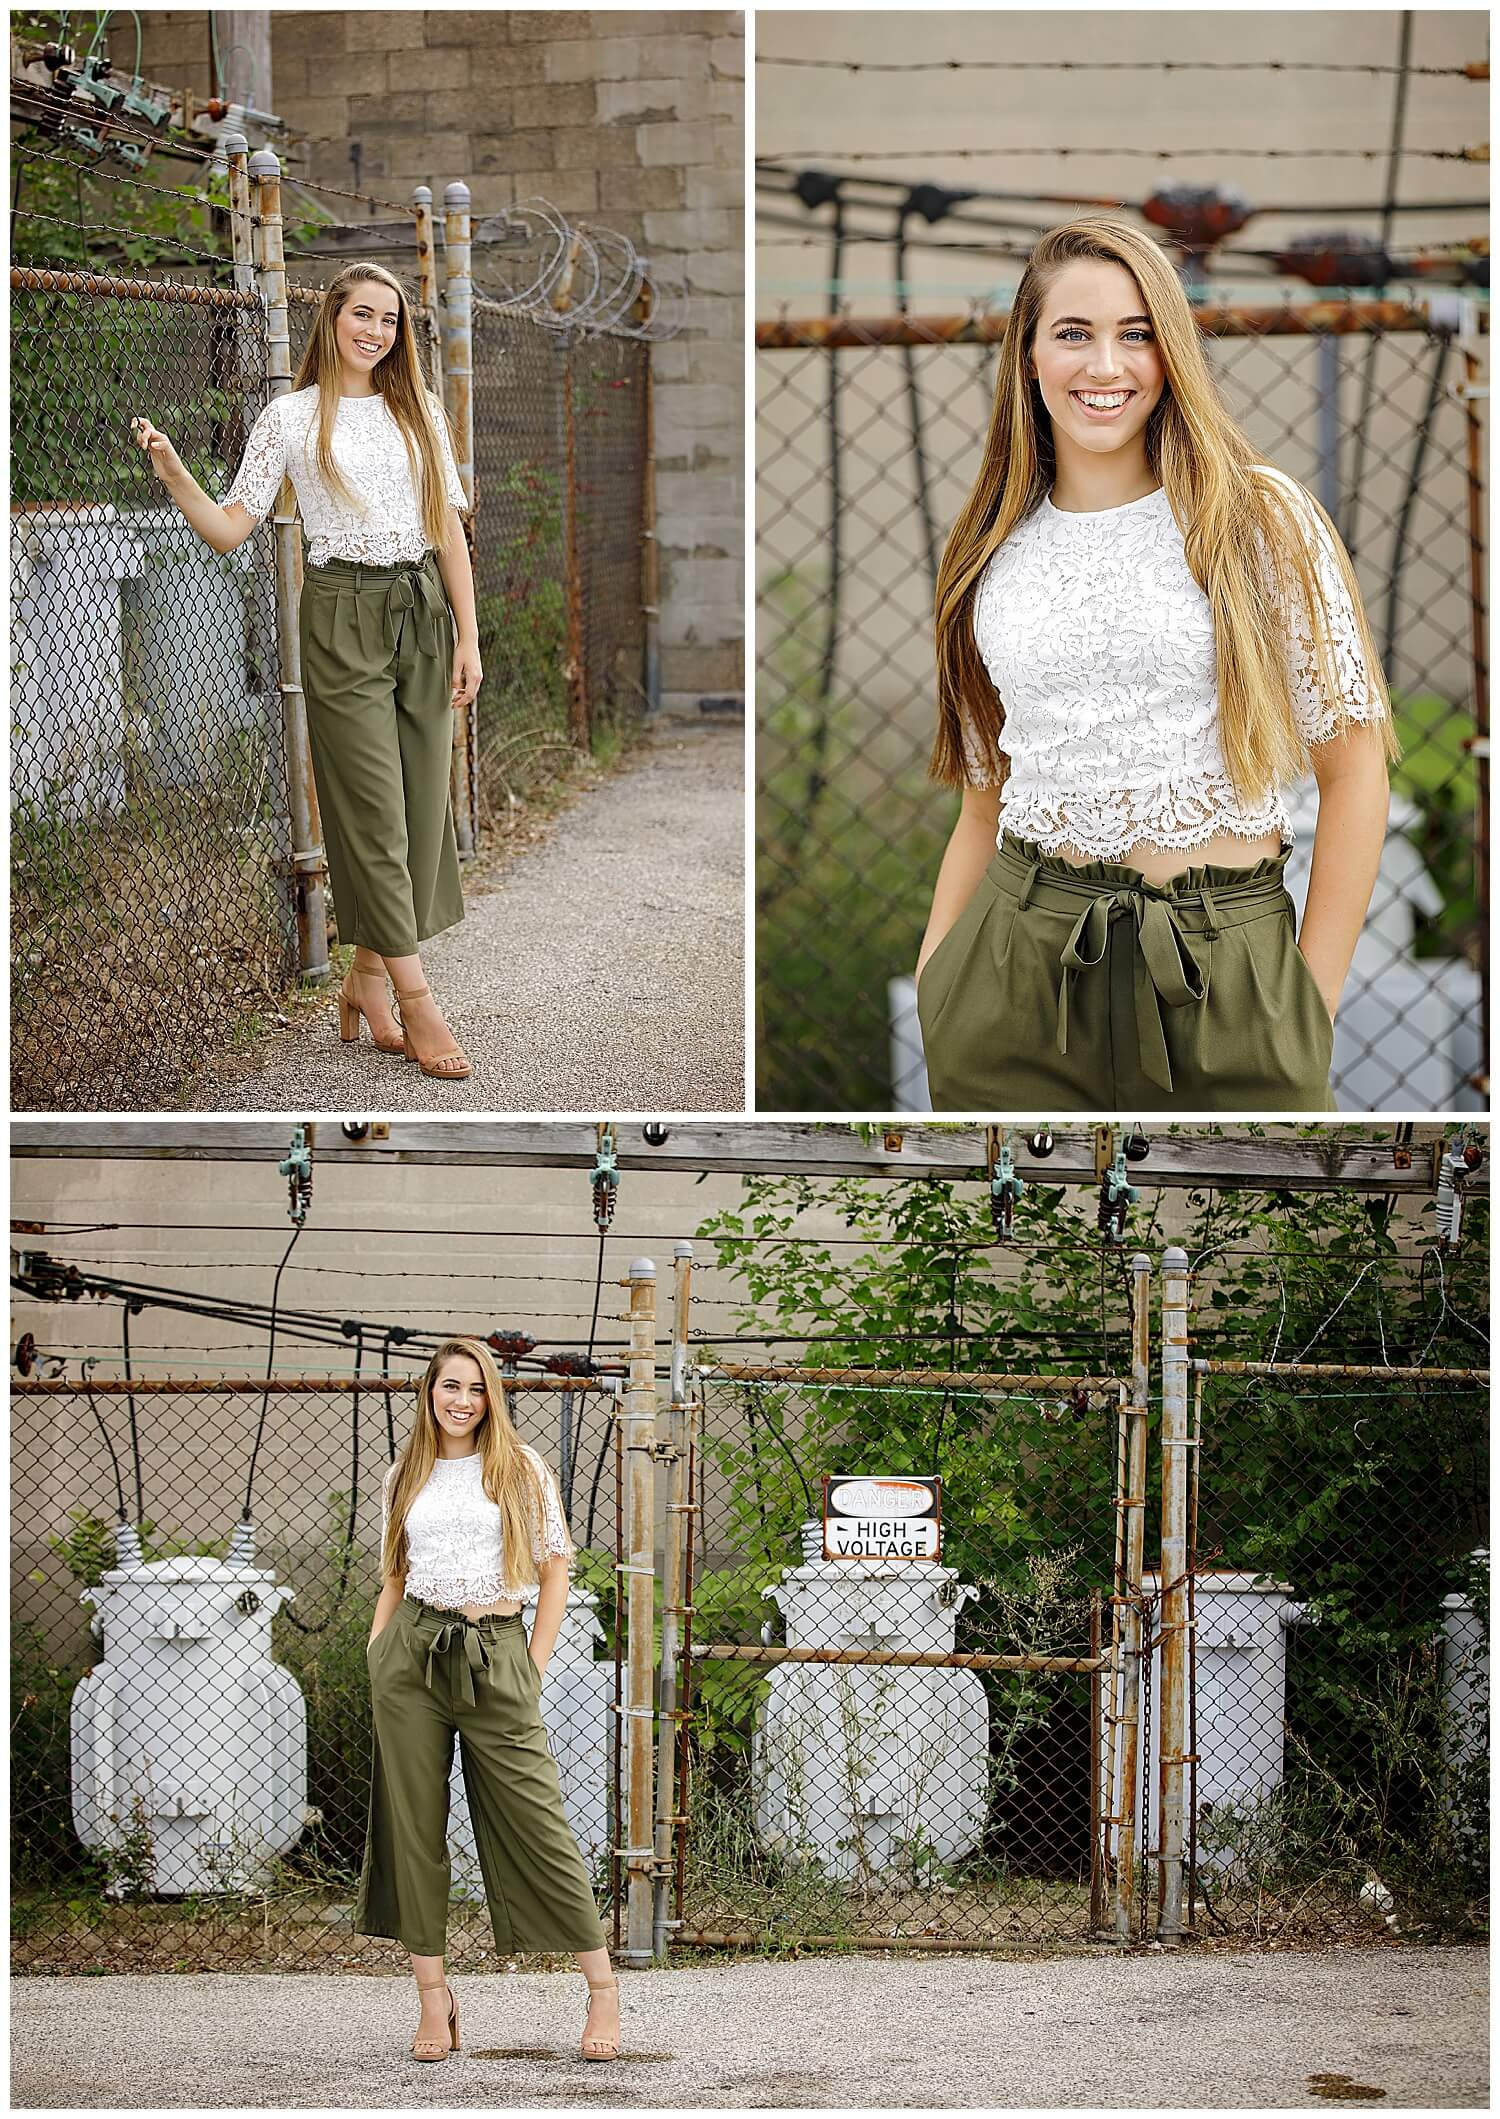 Beautiful senior girl from Otsego High School in green pants and white lace top